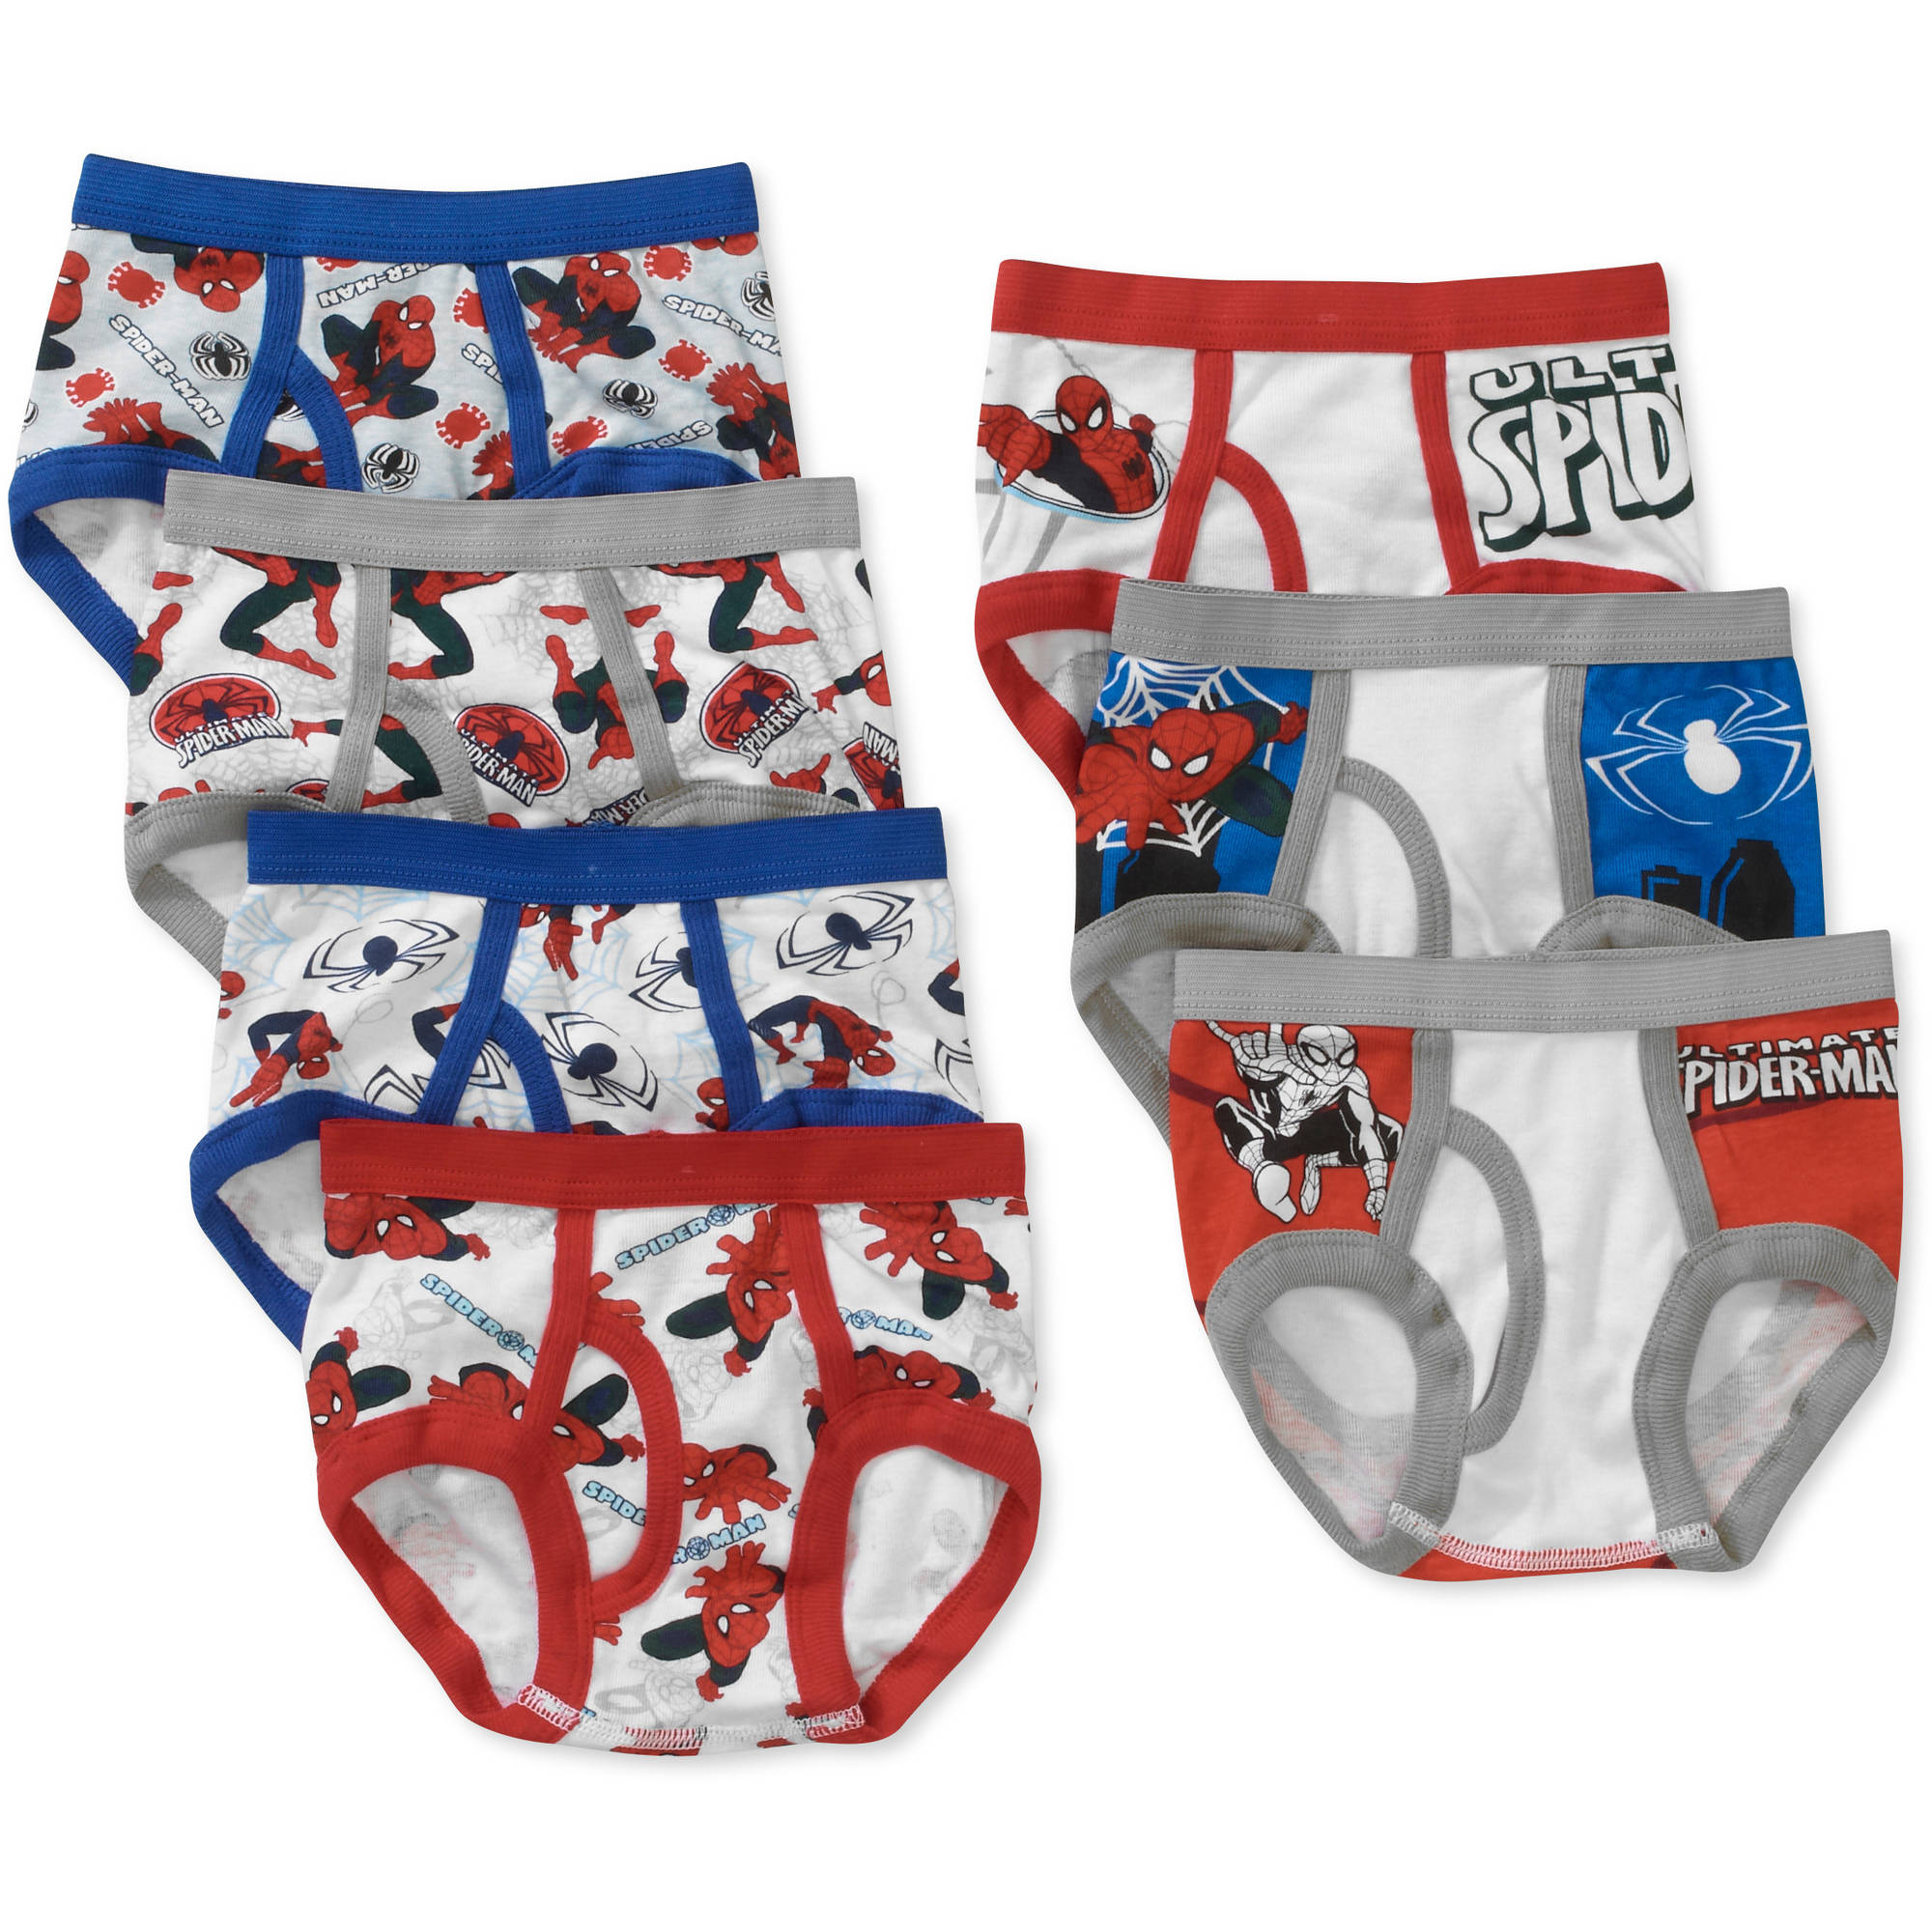 Spiderman Toddler Boys Underwear, 7 Pack - Walmart.com